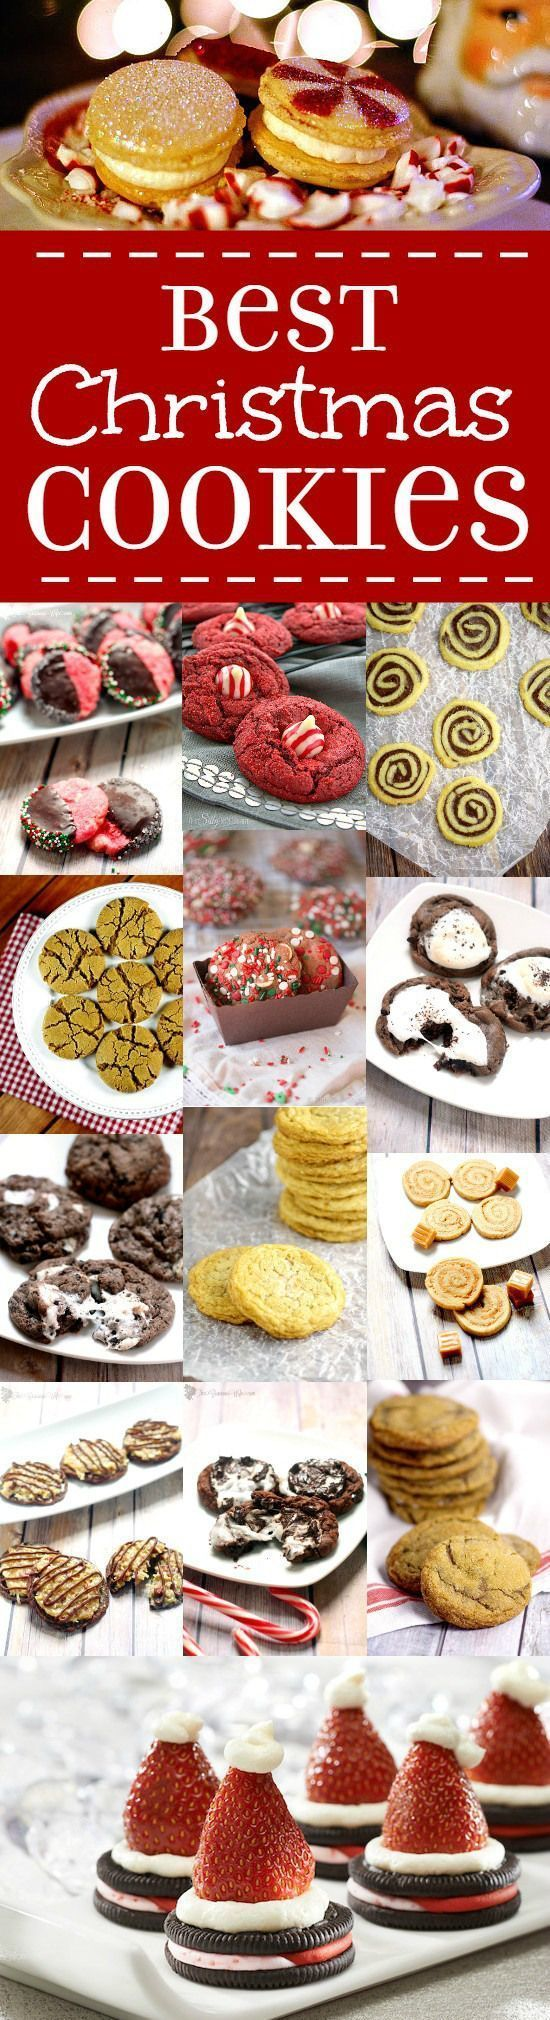 Best Christmas Cookies Recipes Get to holiday baking with these 70+ MUST try Best Christmas Cookies recipes featuring chocolate, peppermint, cinnamon and so many more festive holiday flavors! Best EVER Christmas Cookies recipes are perfect for an exchange with everything from easy cookies recipes to cut outs, s